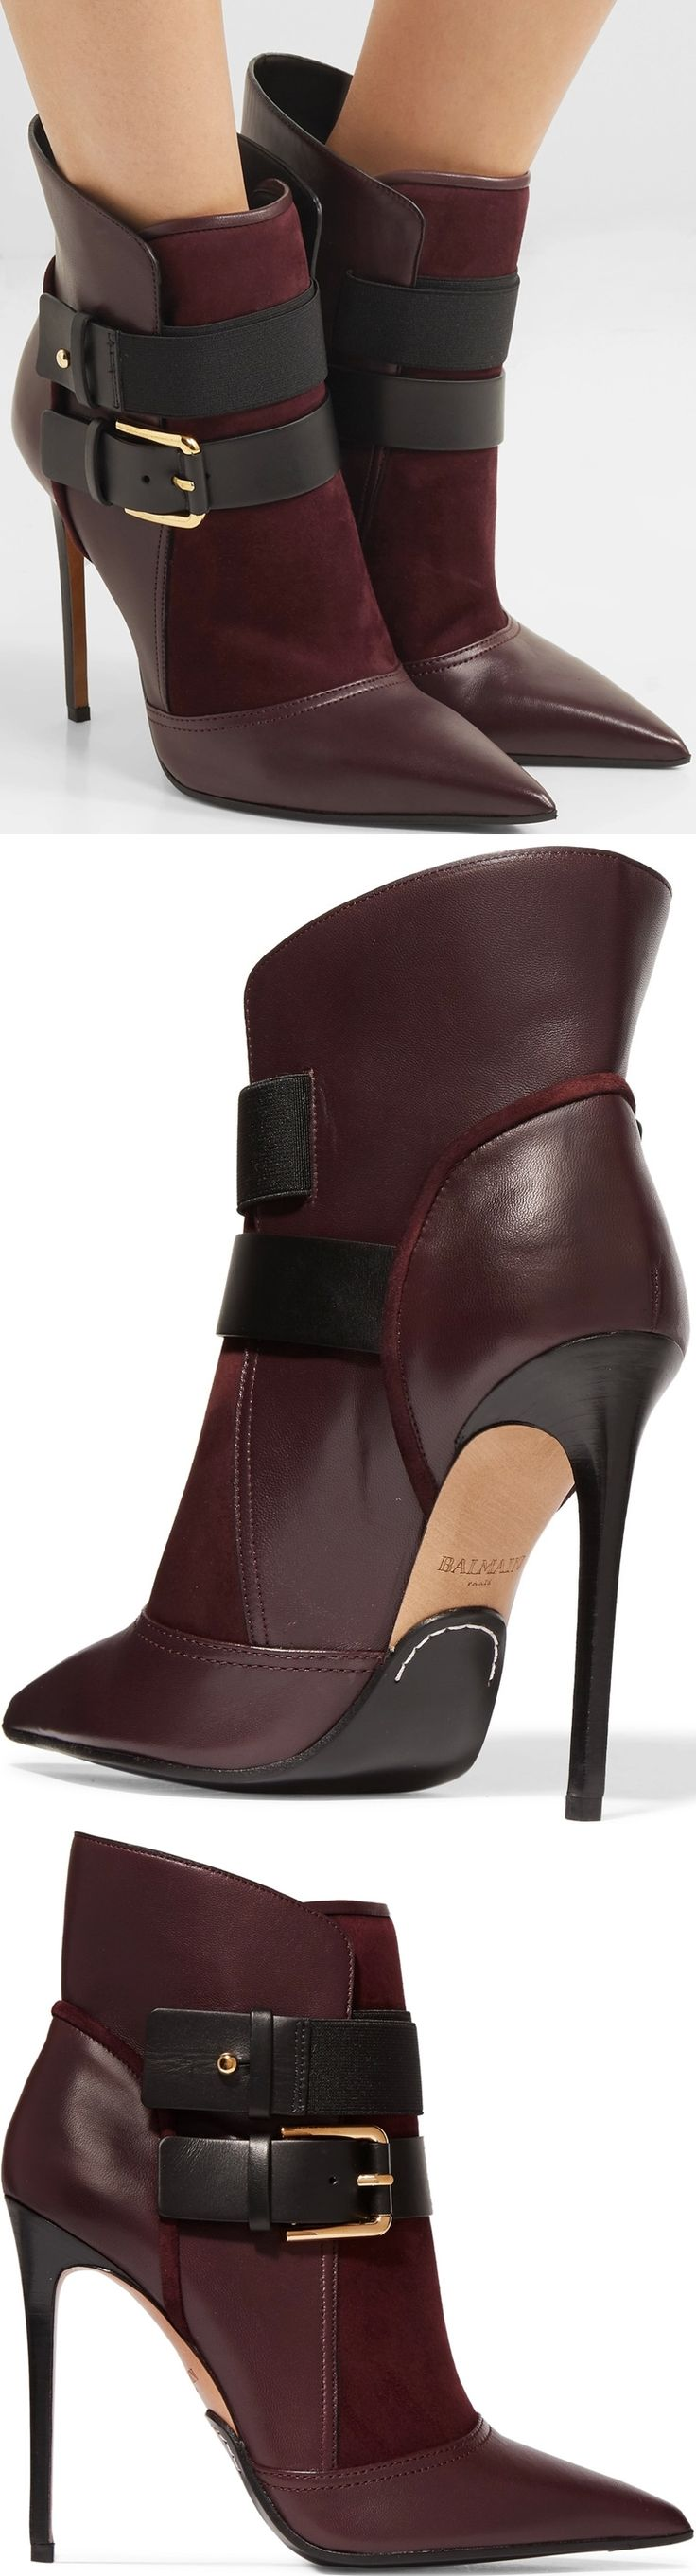 Made in Italy from a combination of plum leather and suede, this Anais buckled ankle boot from Balmain is detailed with elasticated straps and gold buckles.